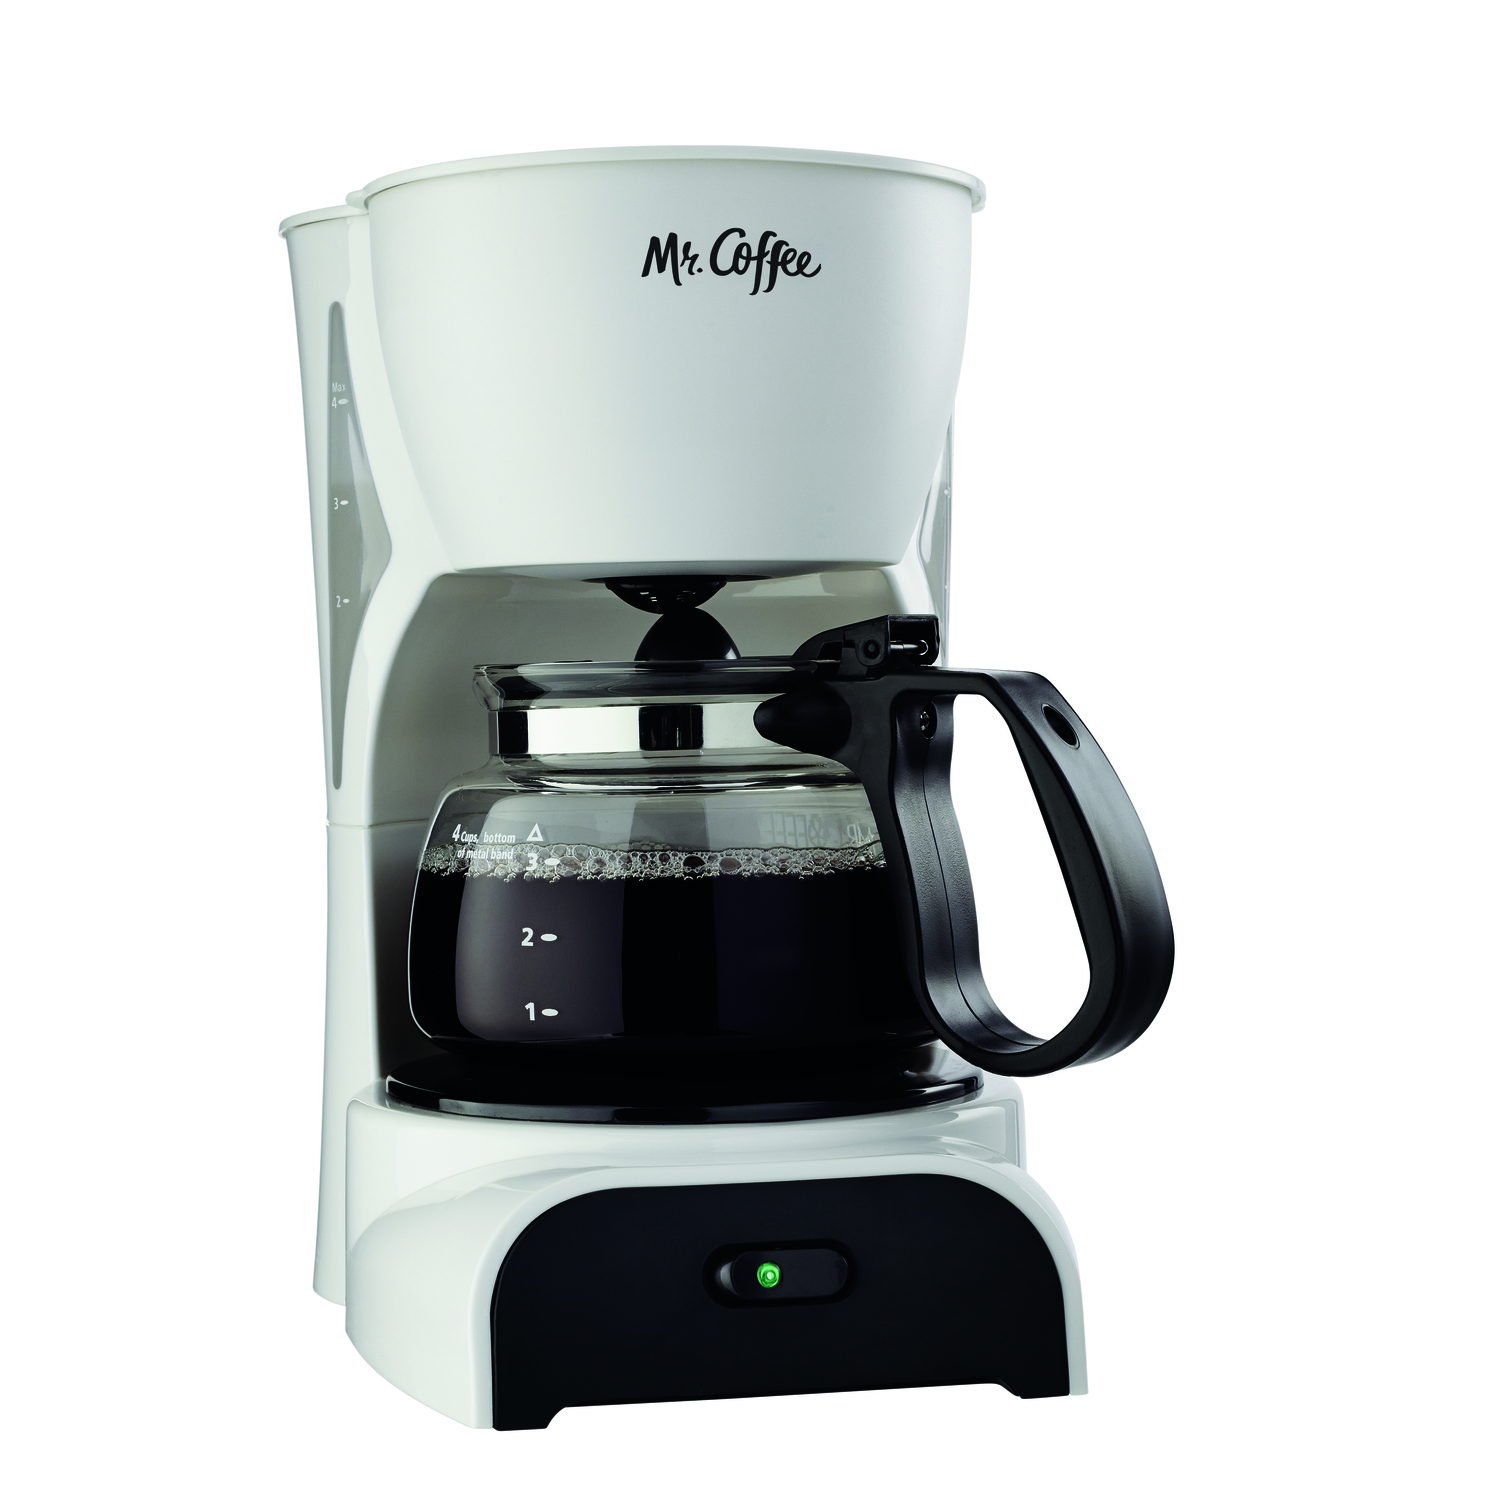 Mr. Coffee  Simple Brew  4 cups Coffee Maker  White